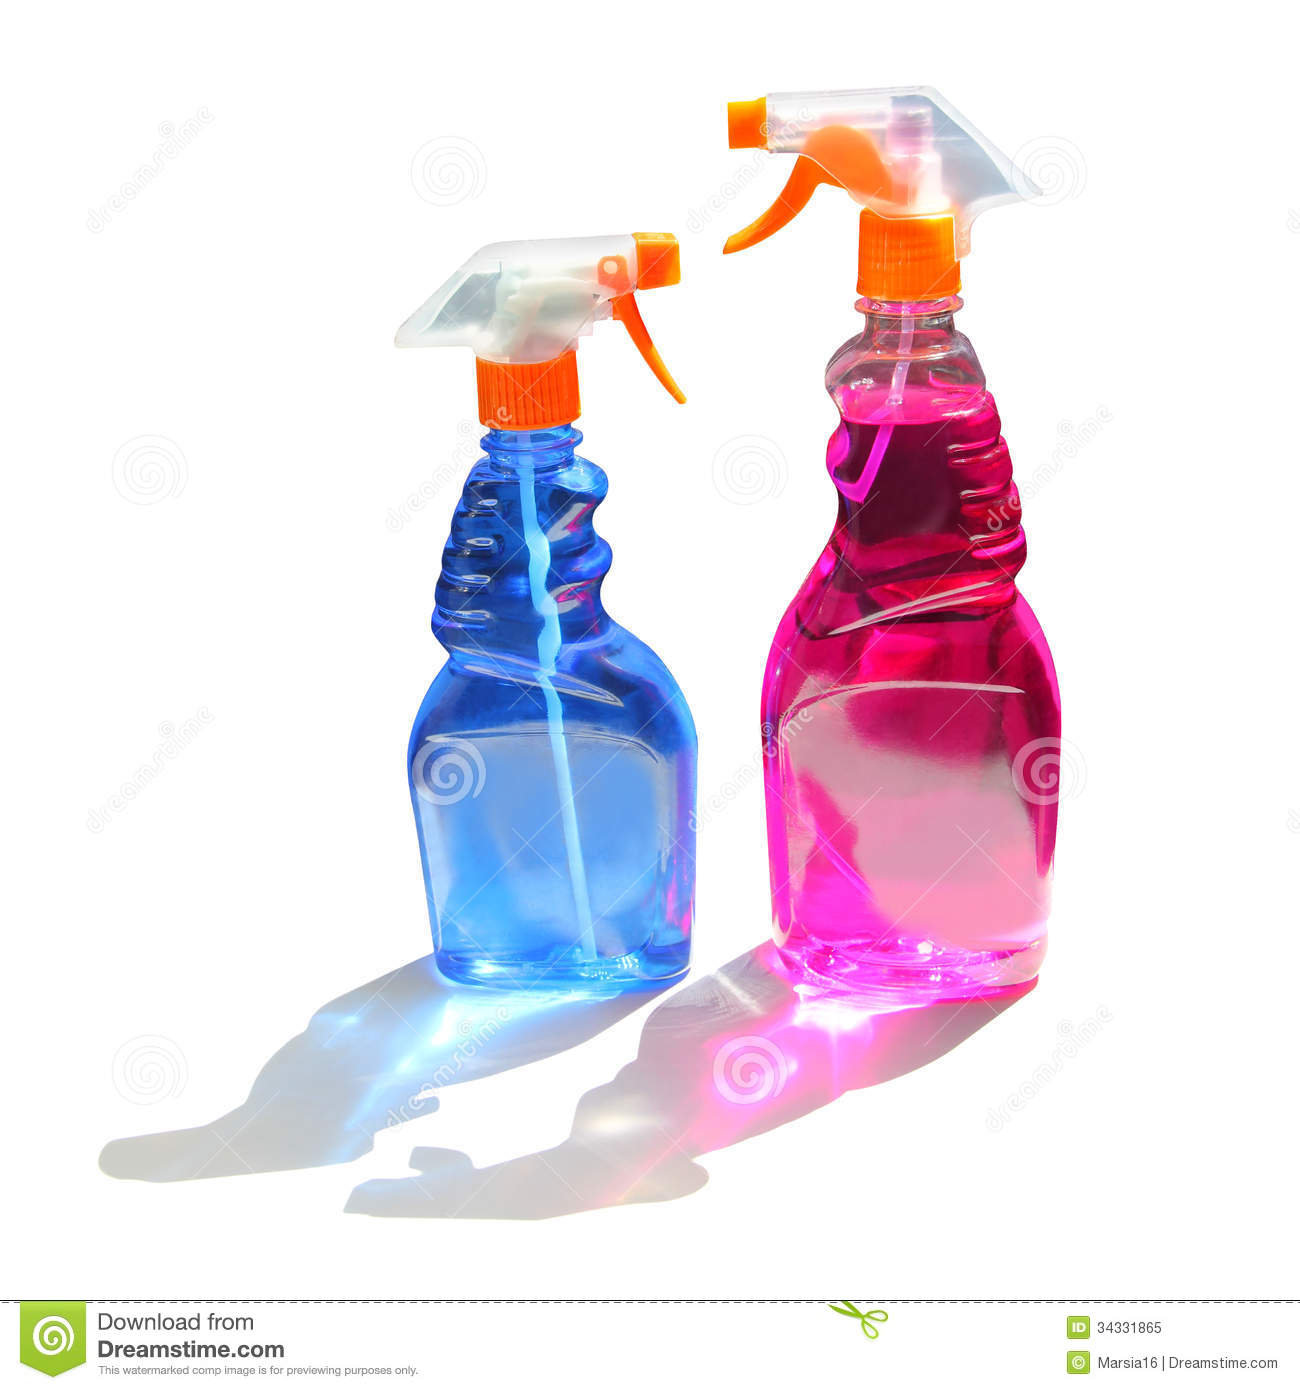 Cleaning bottles clip art - photo#17